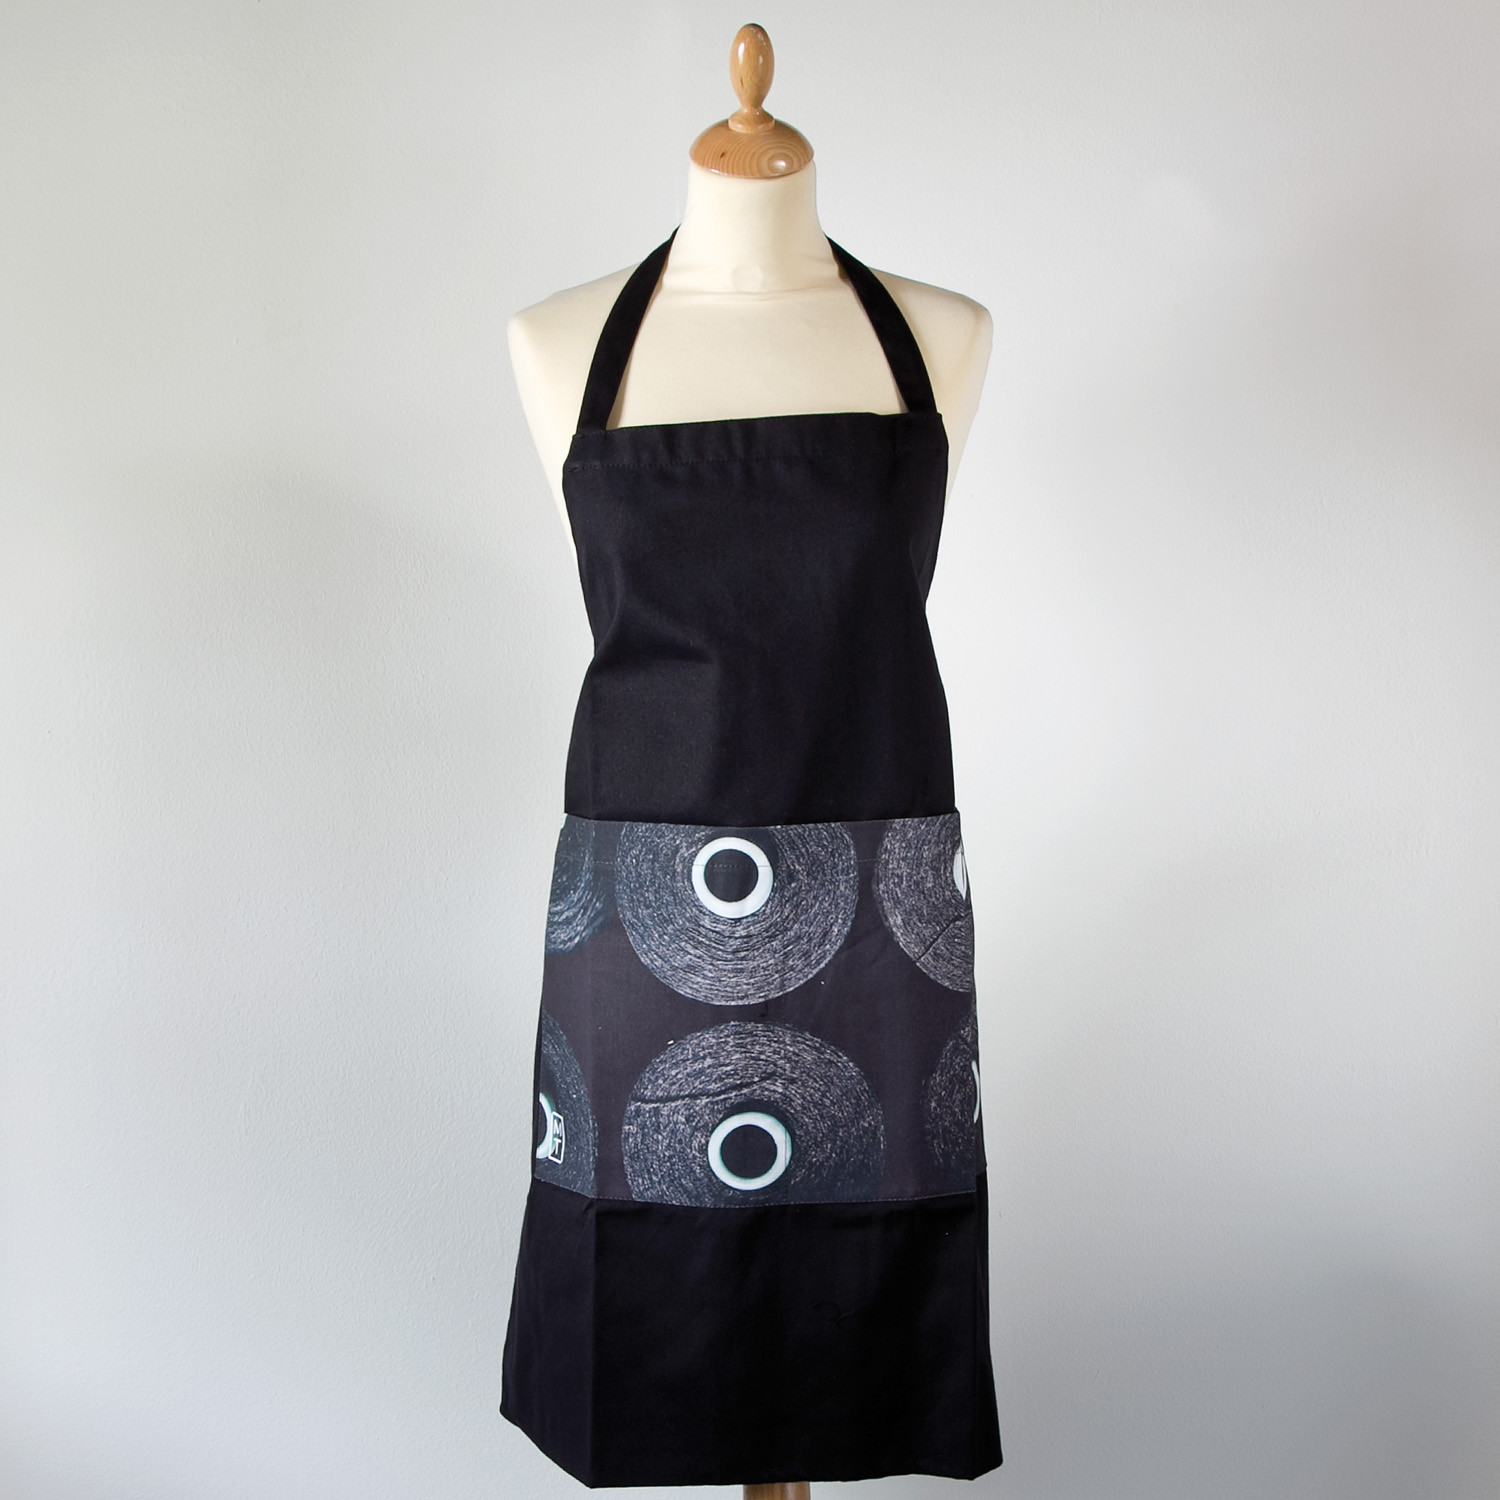 Apron with cones of black yarn